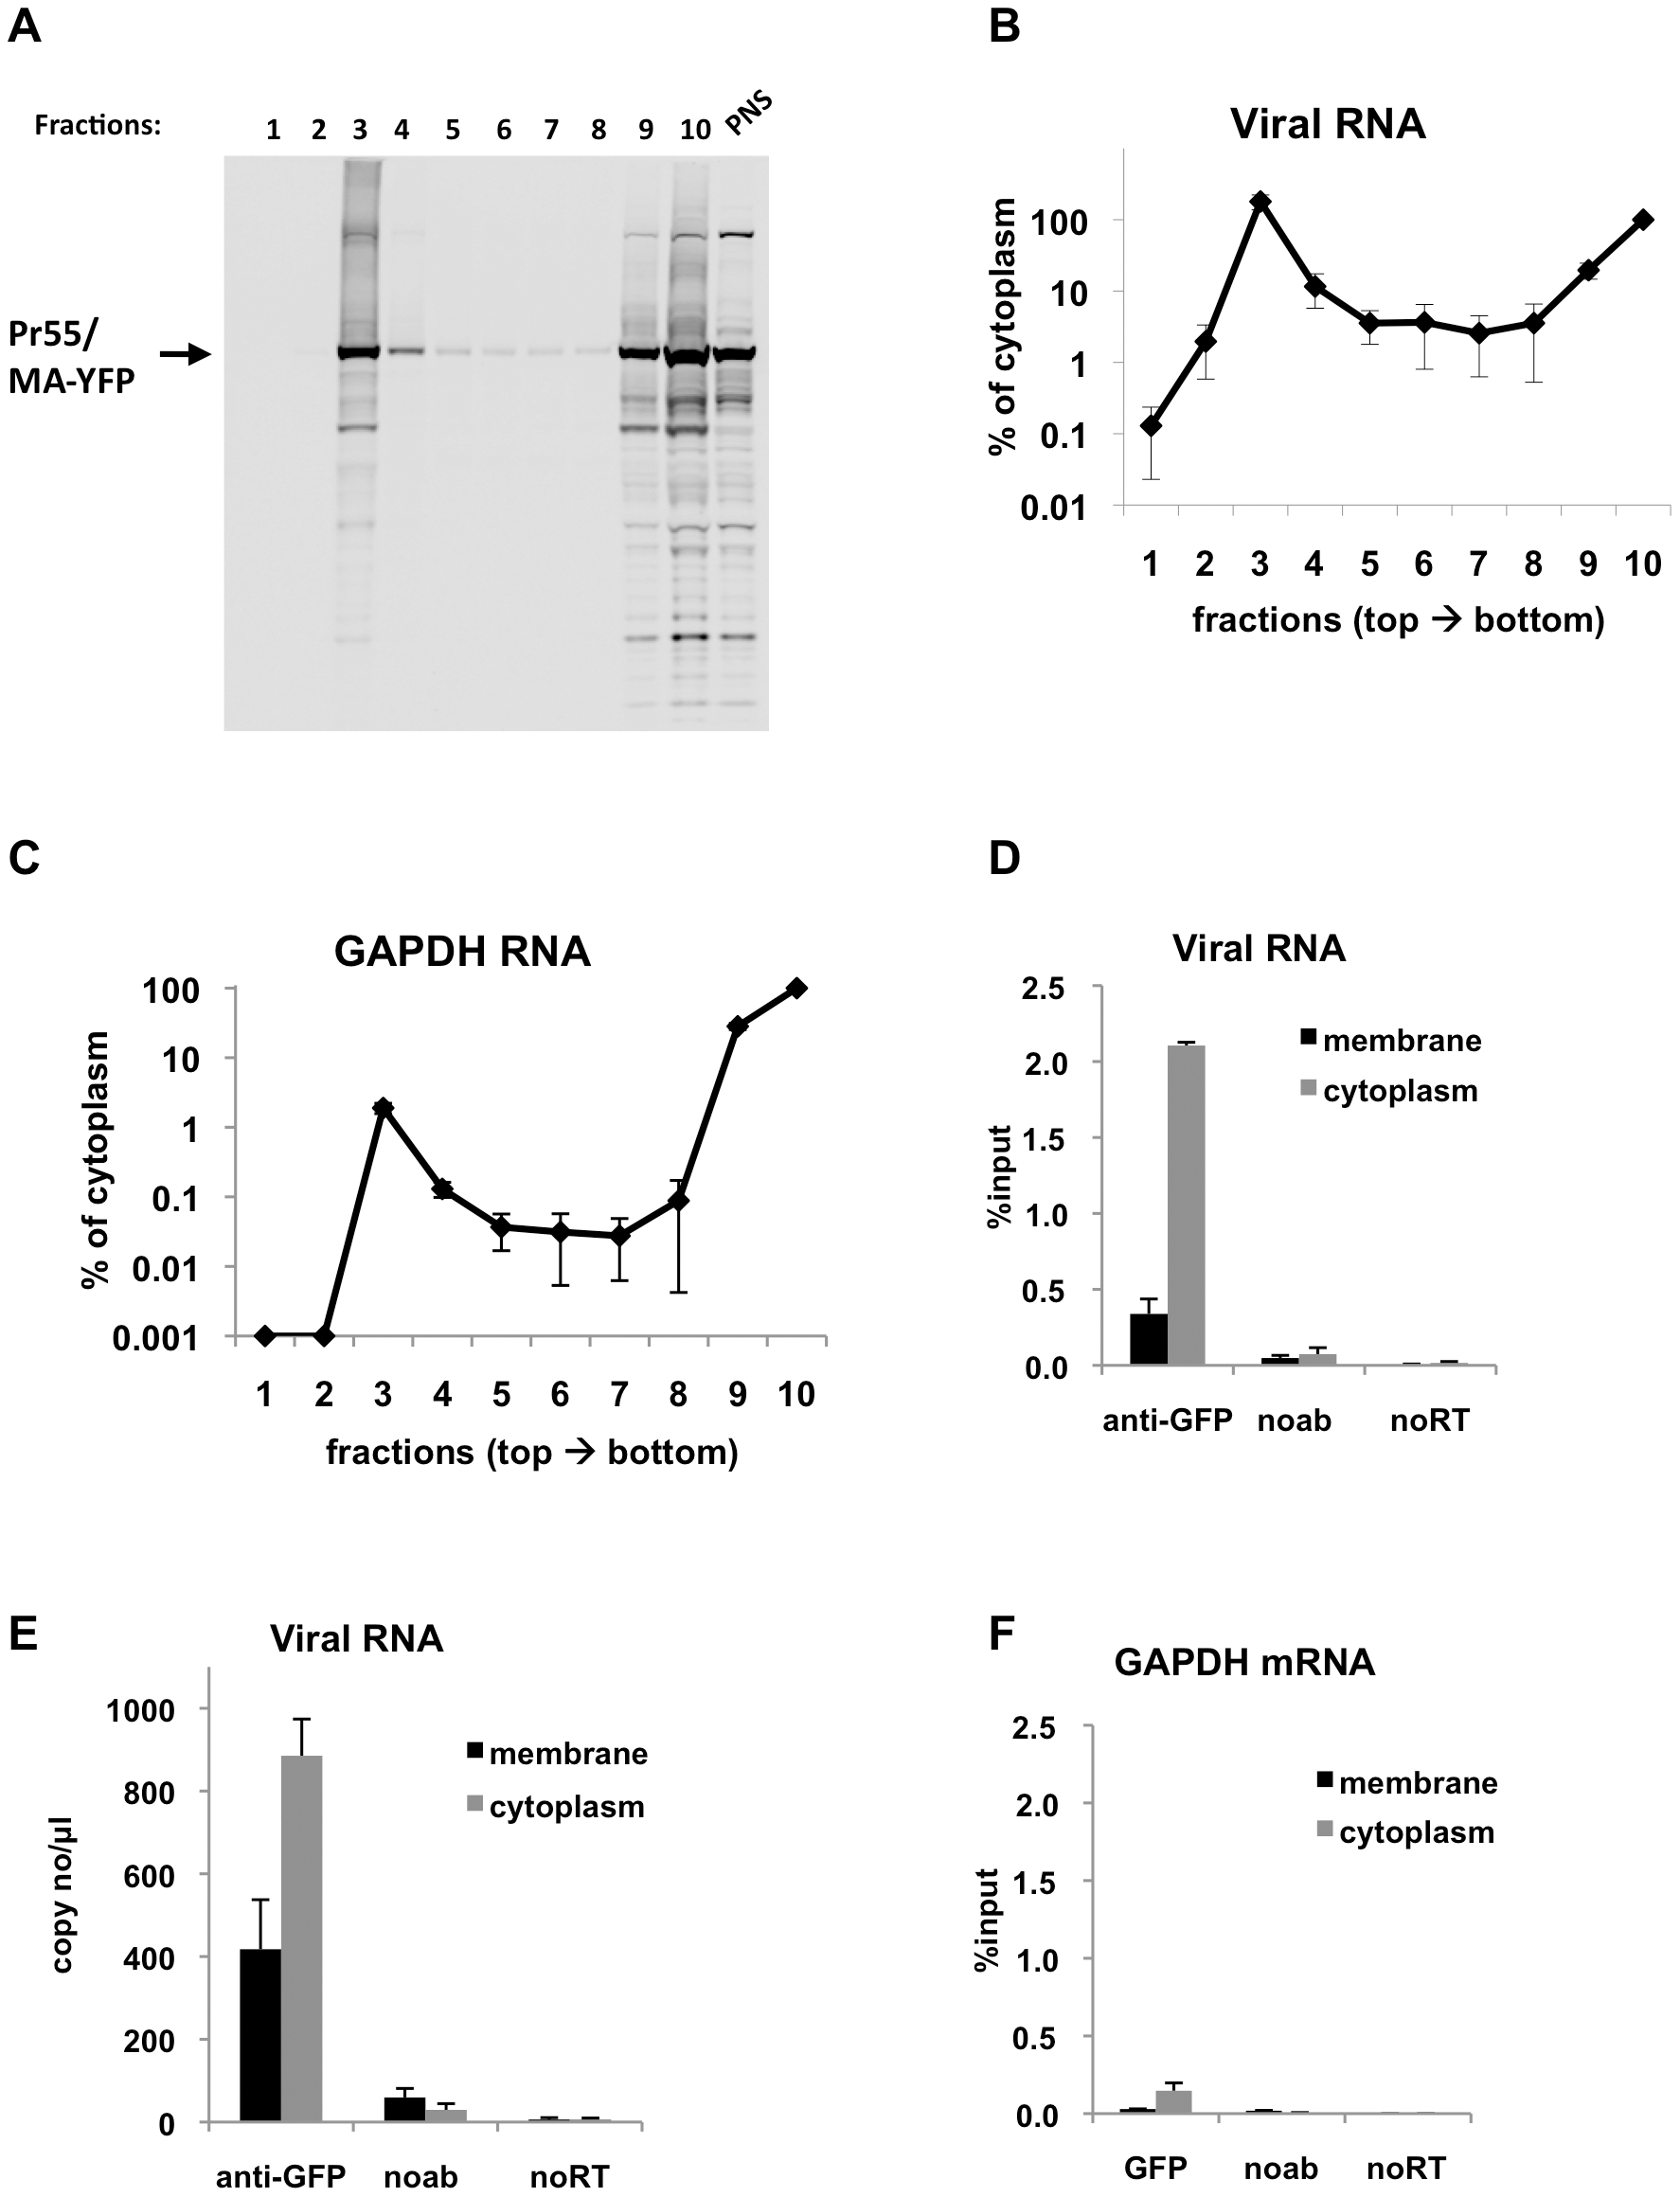 Immunoprecipitation of genomic viral RNA from membrane and cytoplasmic fractions of HIV-1 infected MT2 cells.